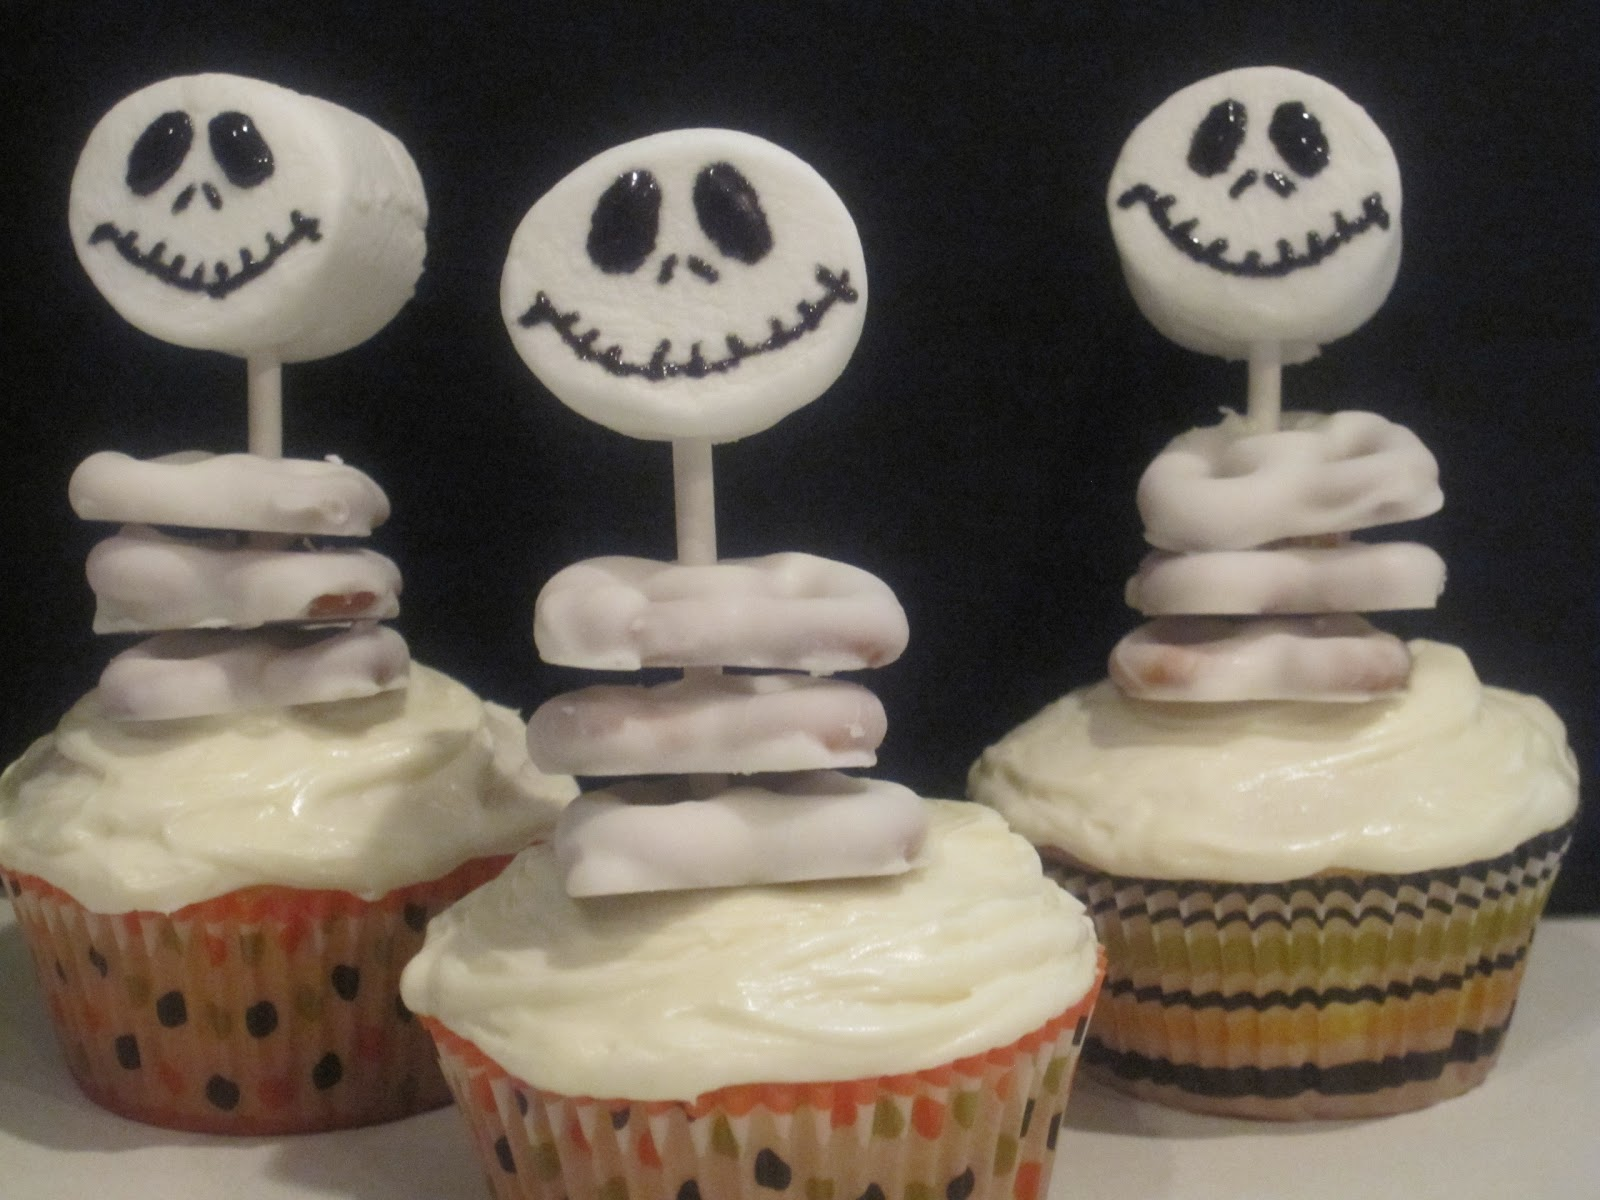 jack skellington cupcakes and halloween decorations - Halloween Decorations Cakes